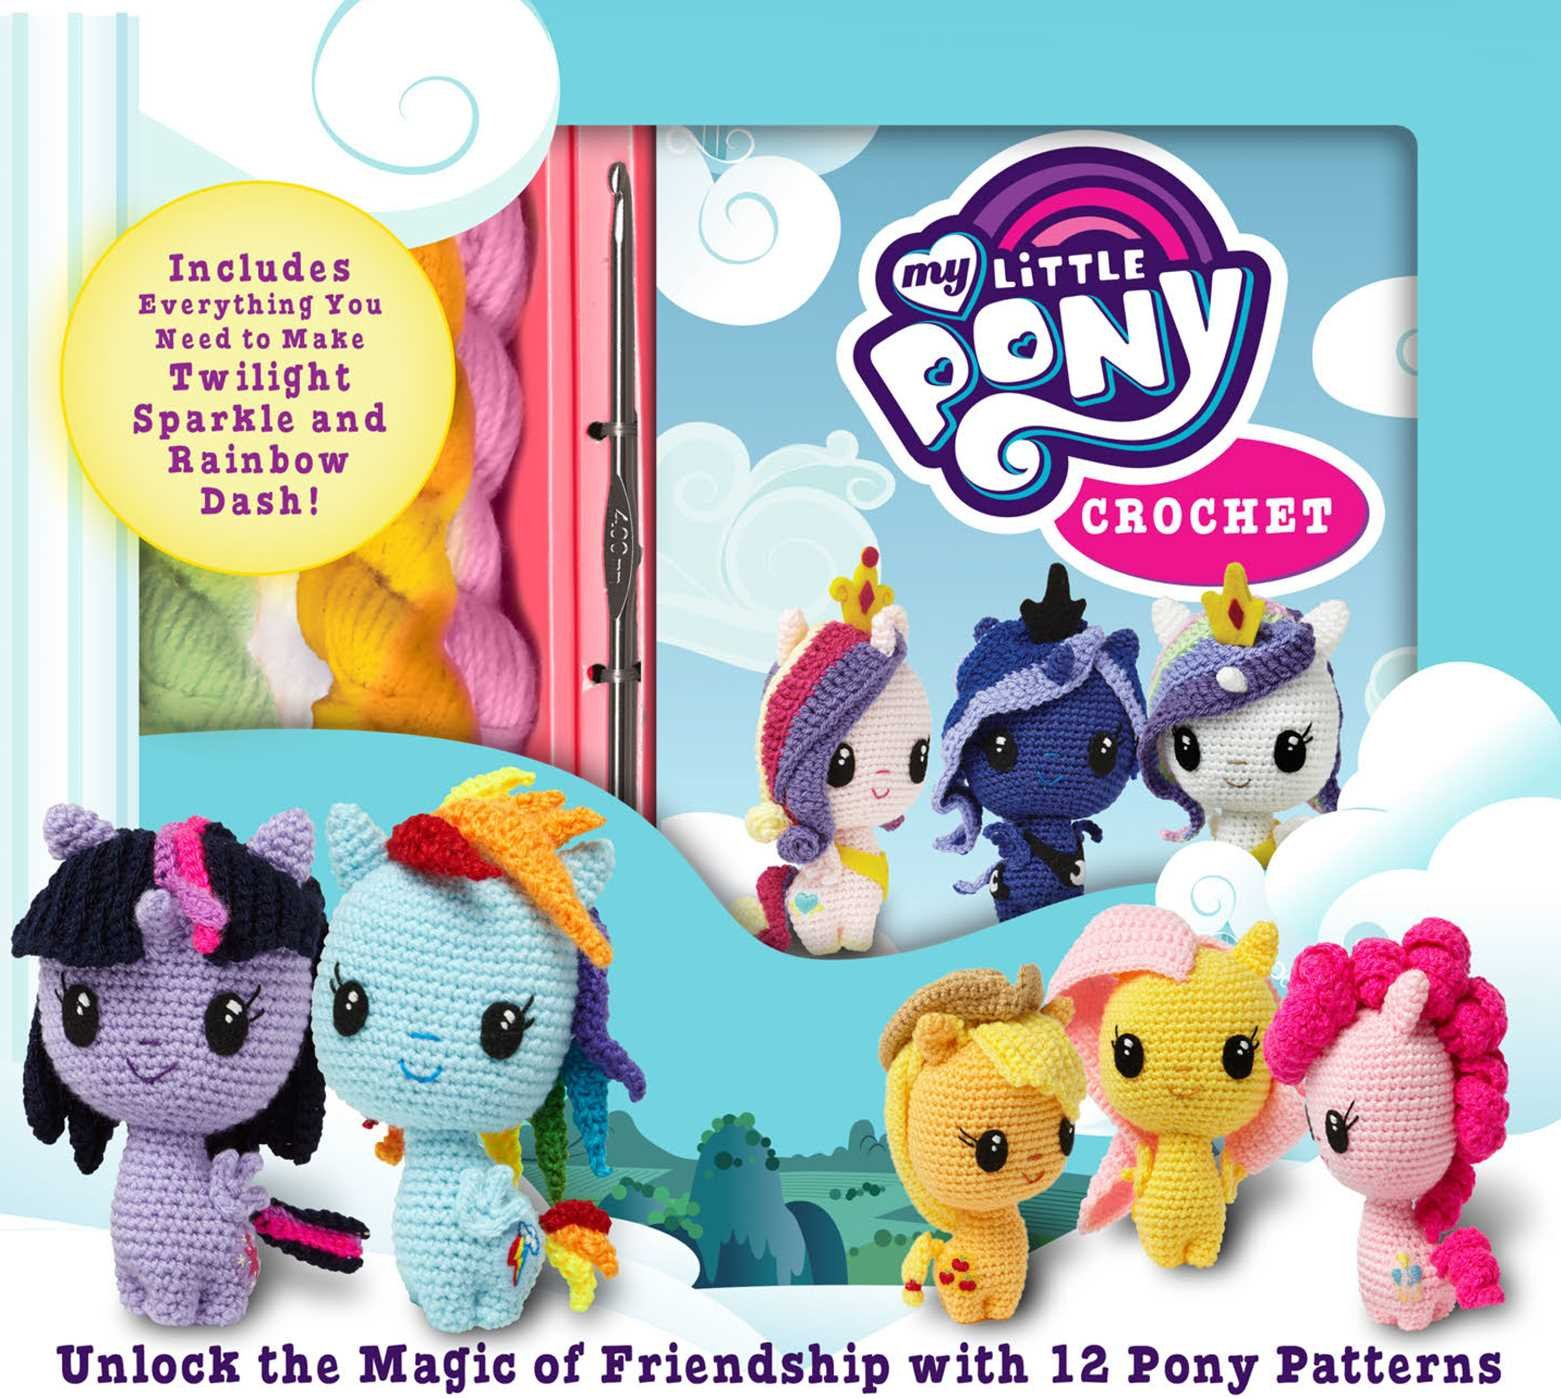 My Little Pony Crochet (Crochet Kits)